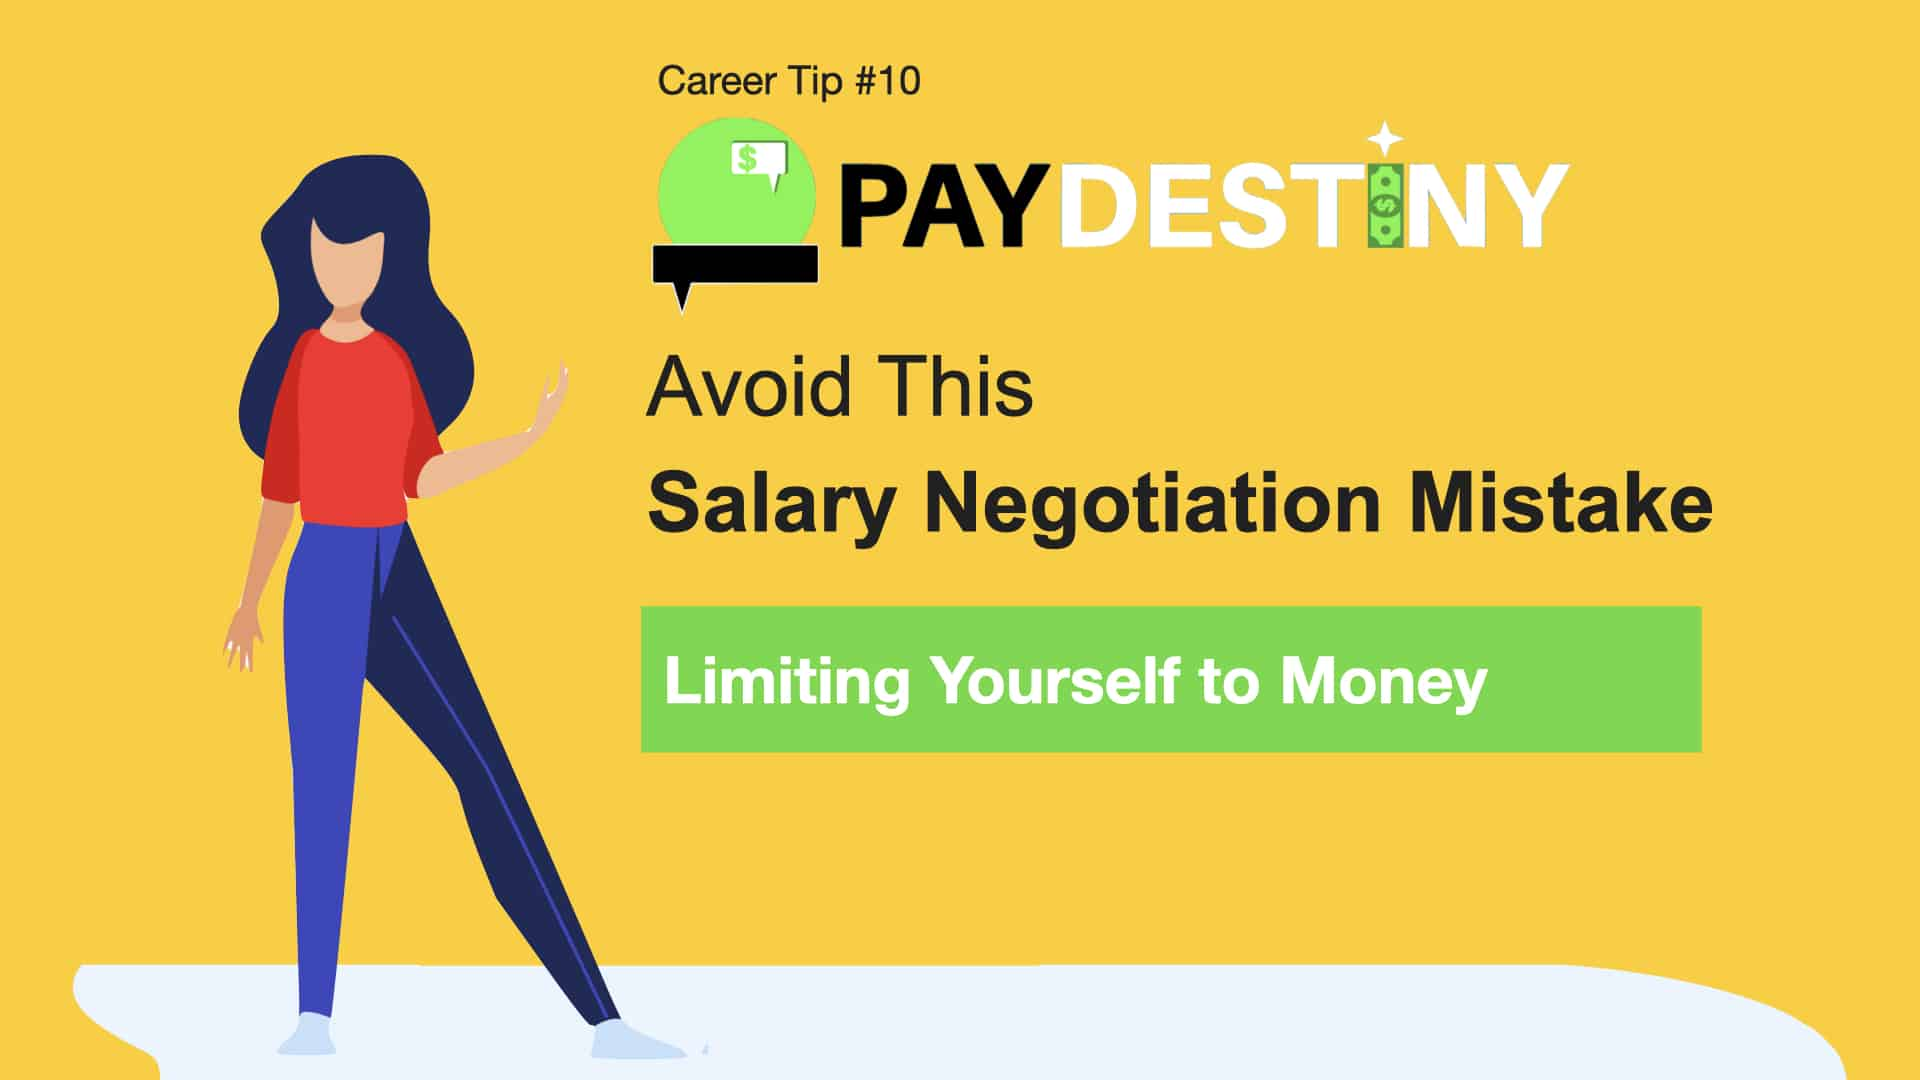 Salary Negotiation Mistake (Limiting Yourself to Money)